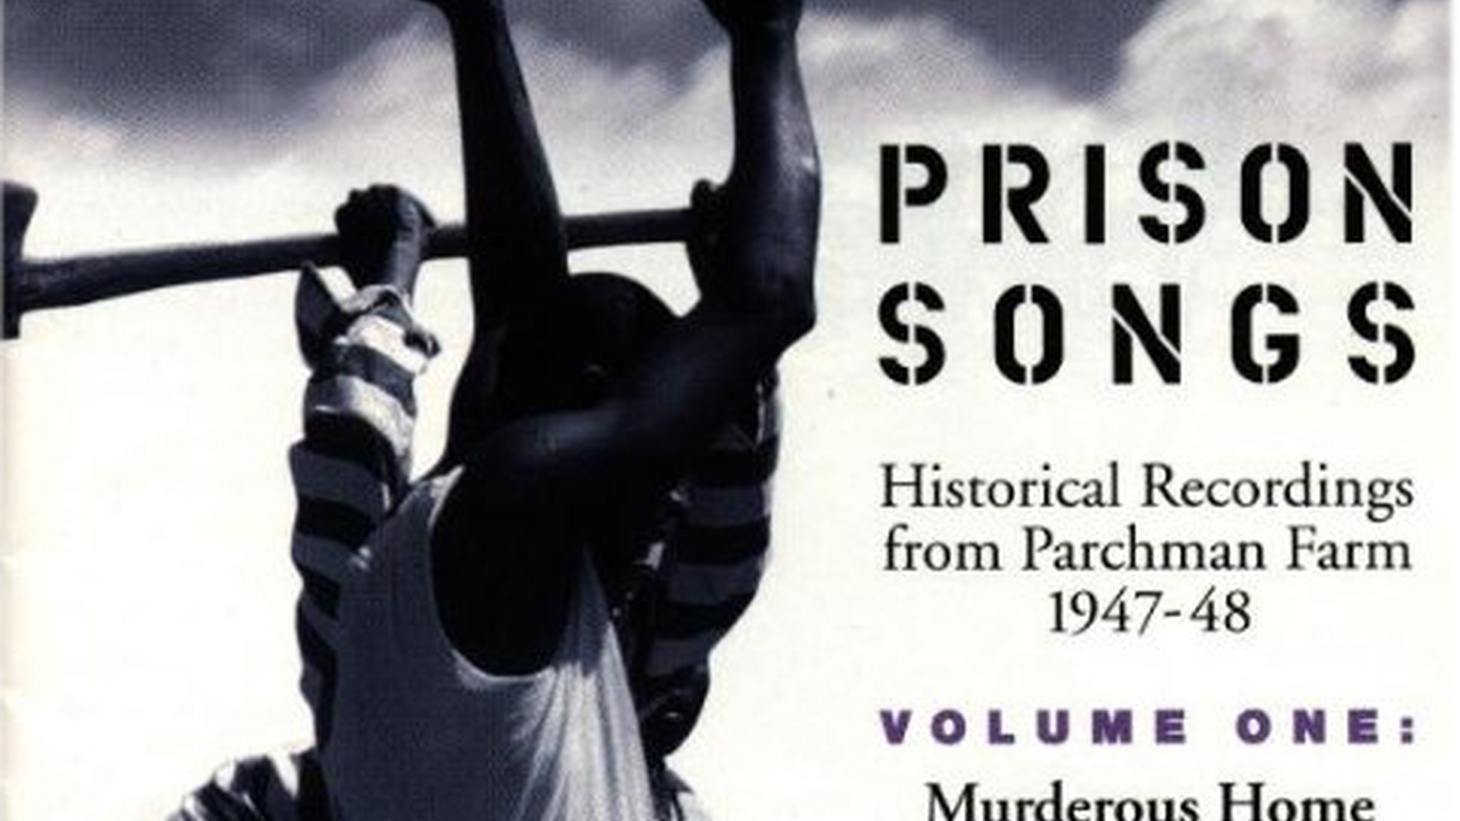 Historical prison songs recorded in the 1940s and 50's from the Louisiana State Prison at Angola, Louisiana, Parchman Farm, Mississippi, a recent collection of songs from the Zomba Maximum Security Prison in Malawi, SW Africa, and gypsy flamenco from the prisons of Spain.